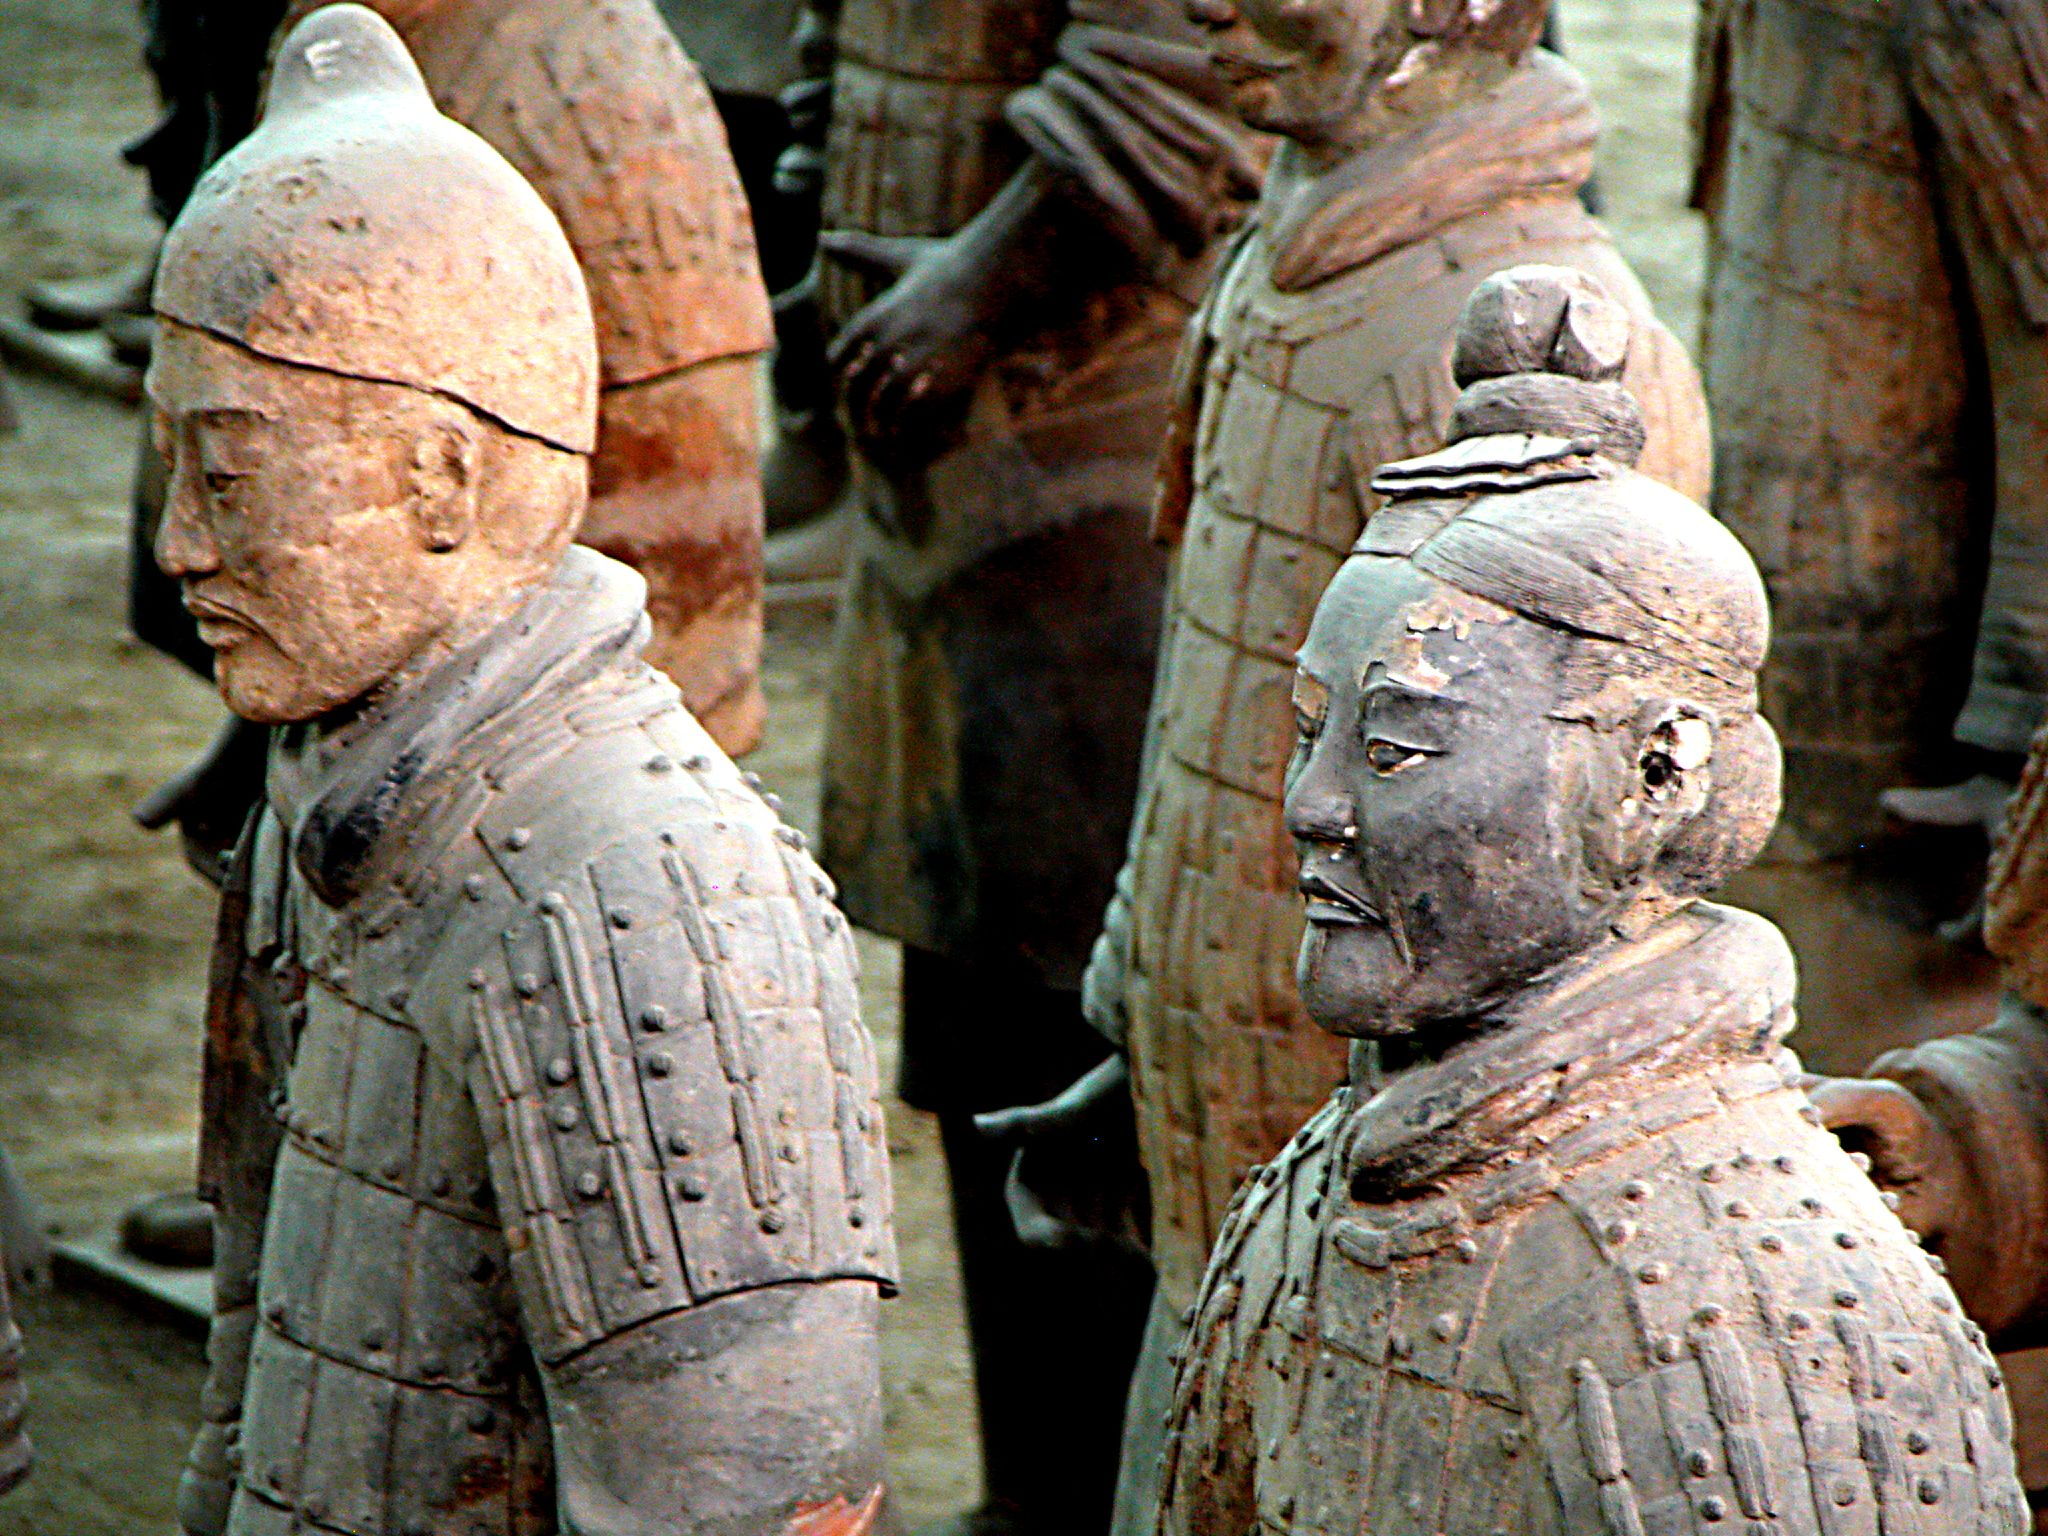 Some of the thousands of life-size Terracotta Warriors of the Qin Dynasty, ca. 210 BC.